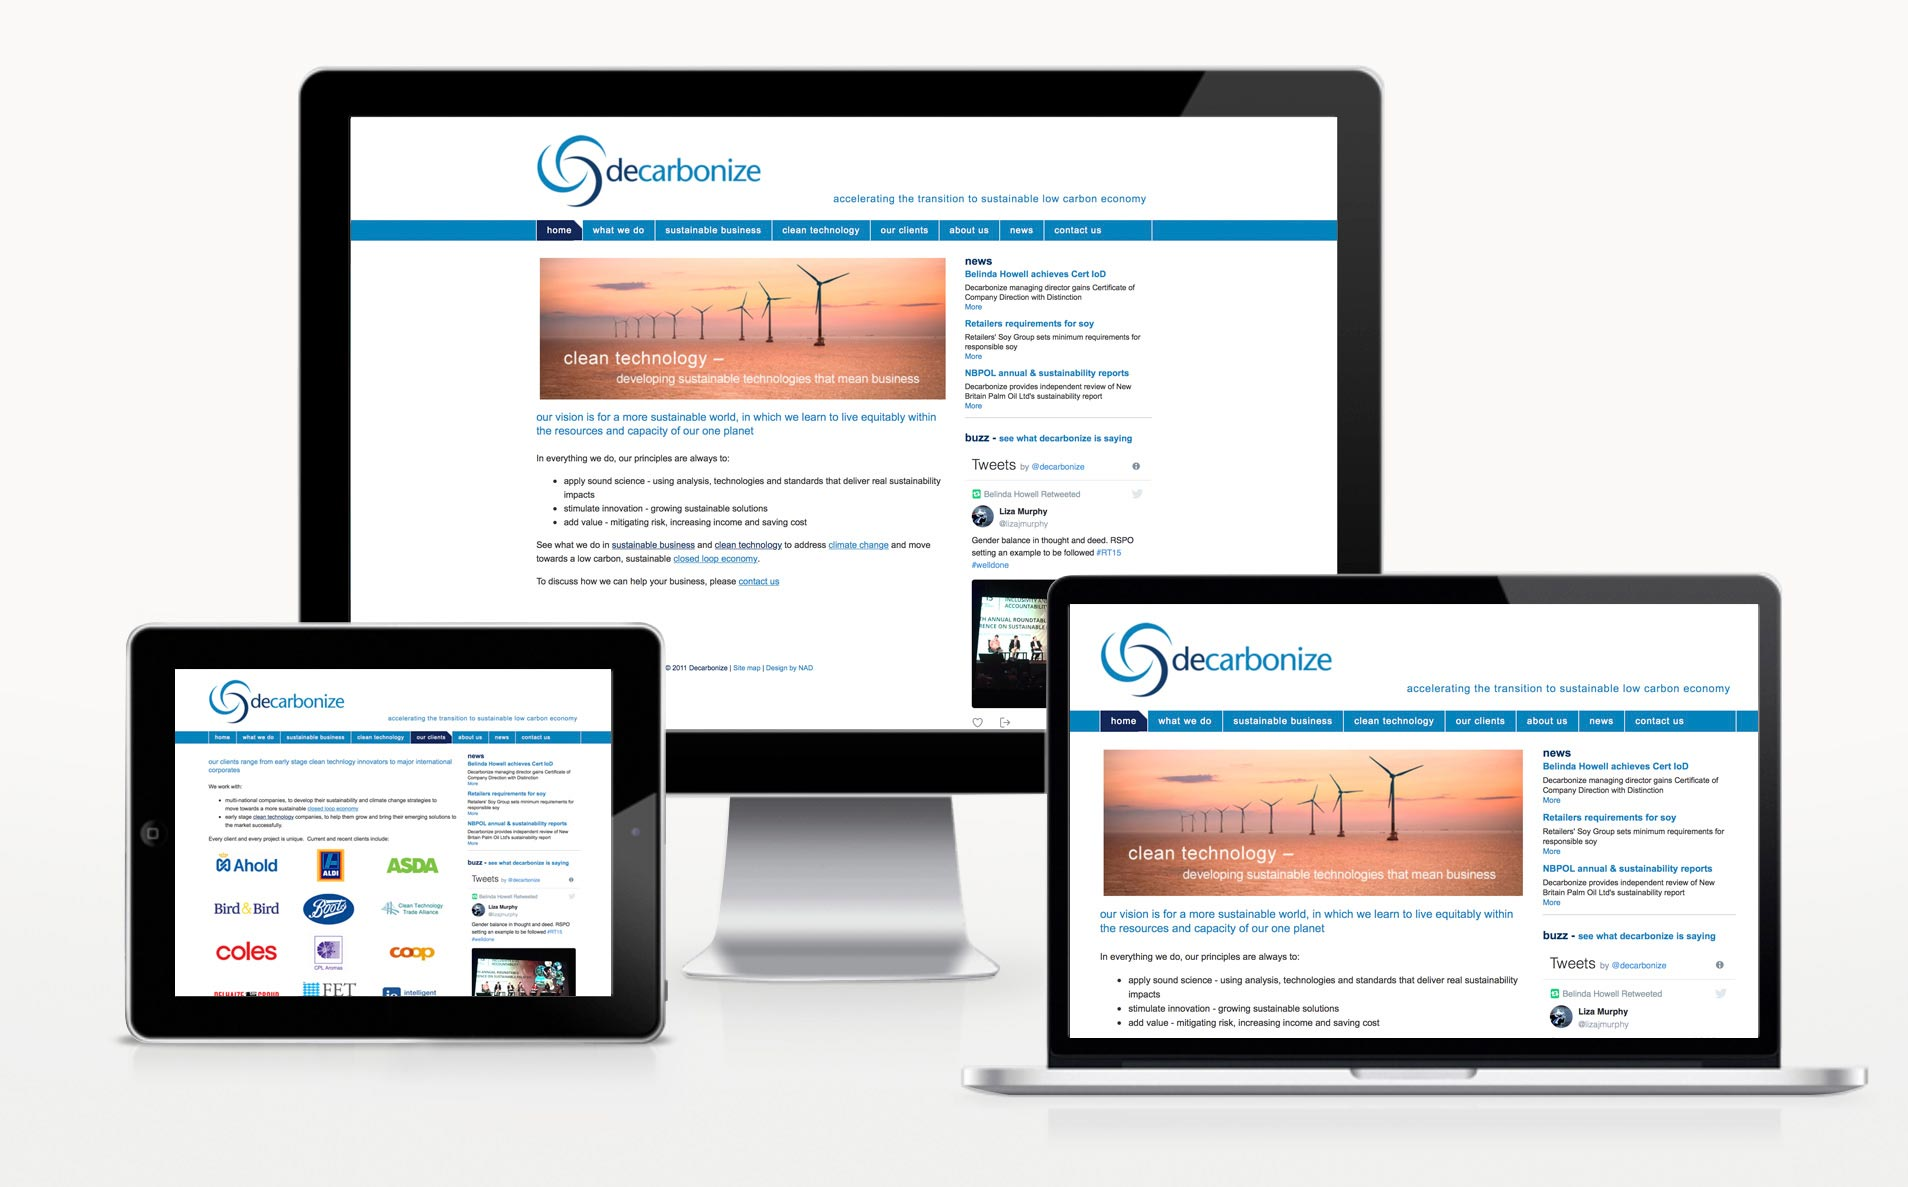 Decarbonize-website-design